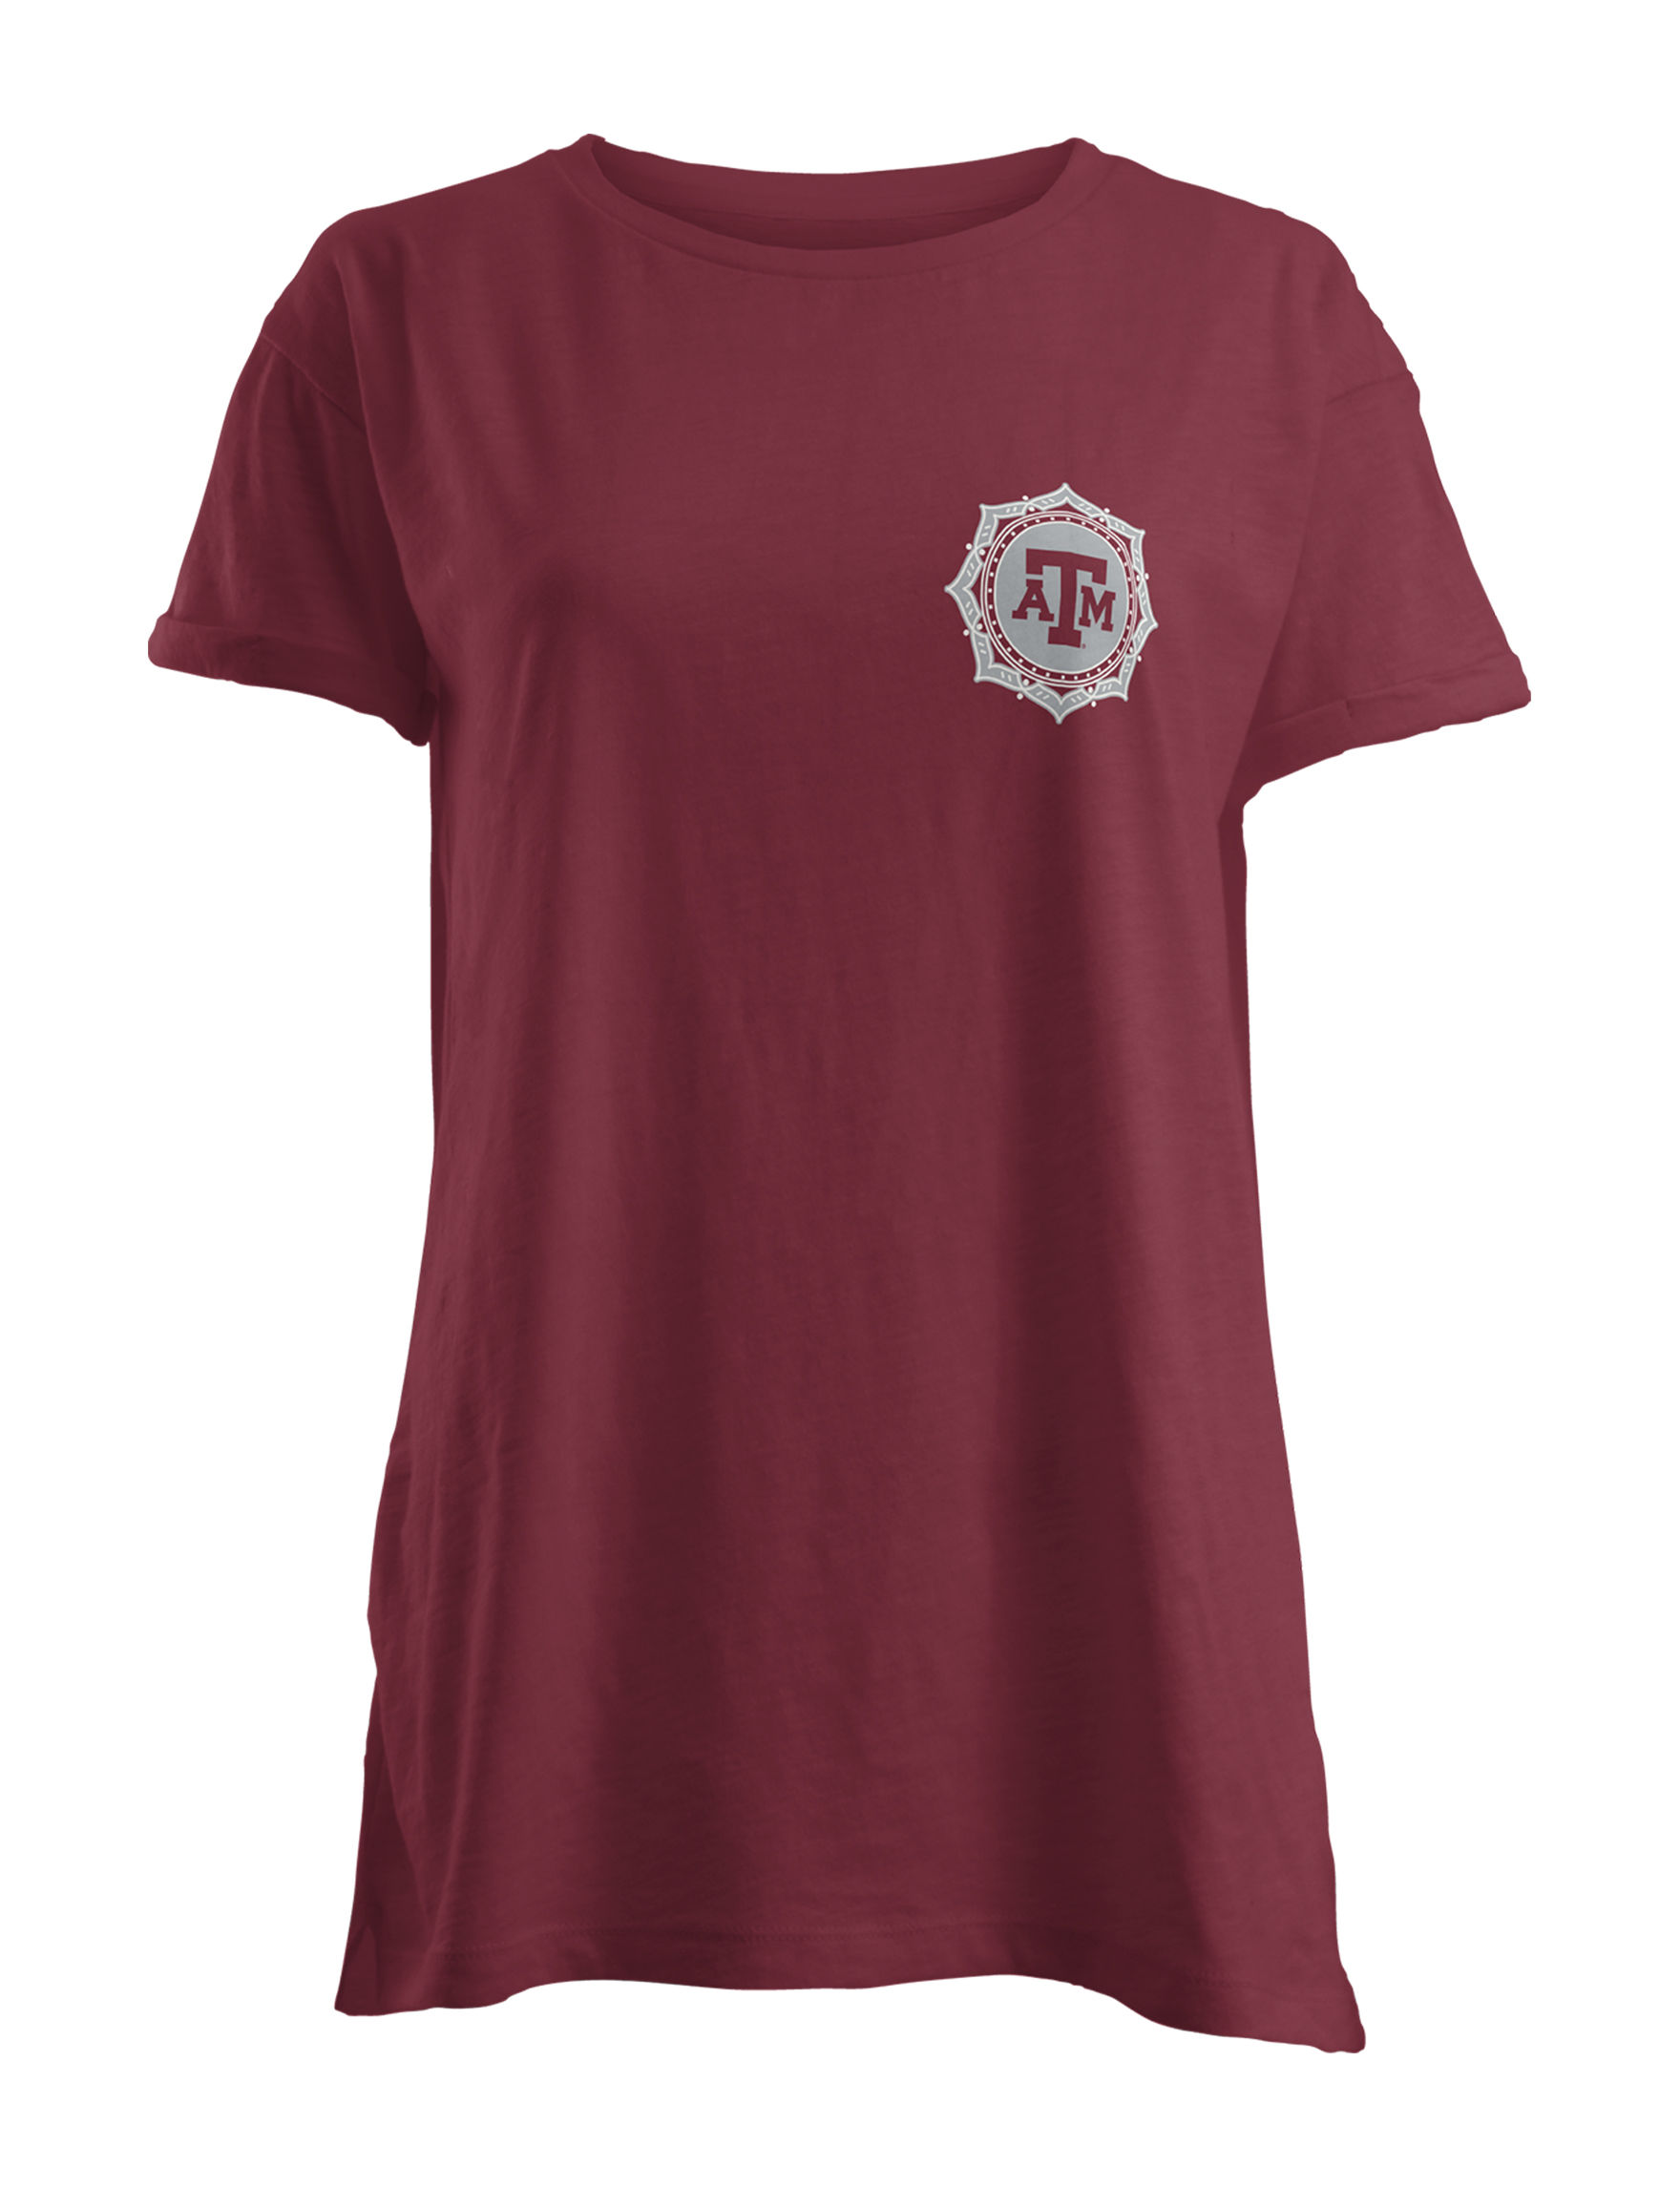 NCAA Maroon Tees & Tanks